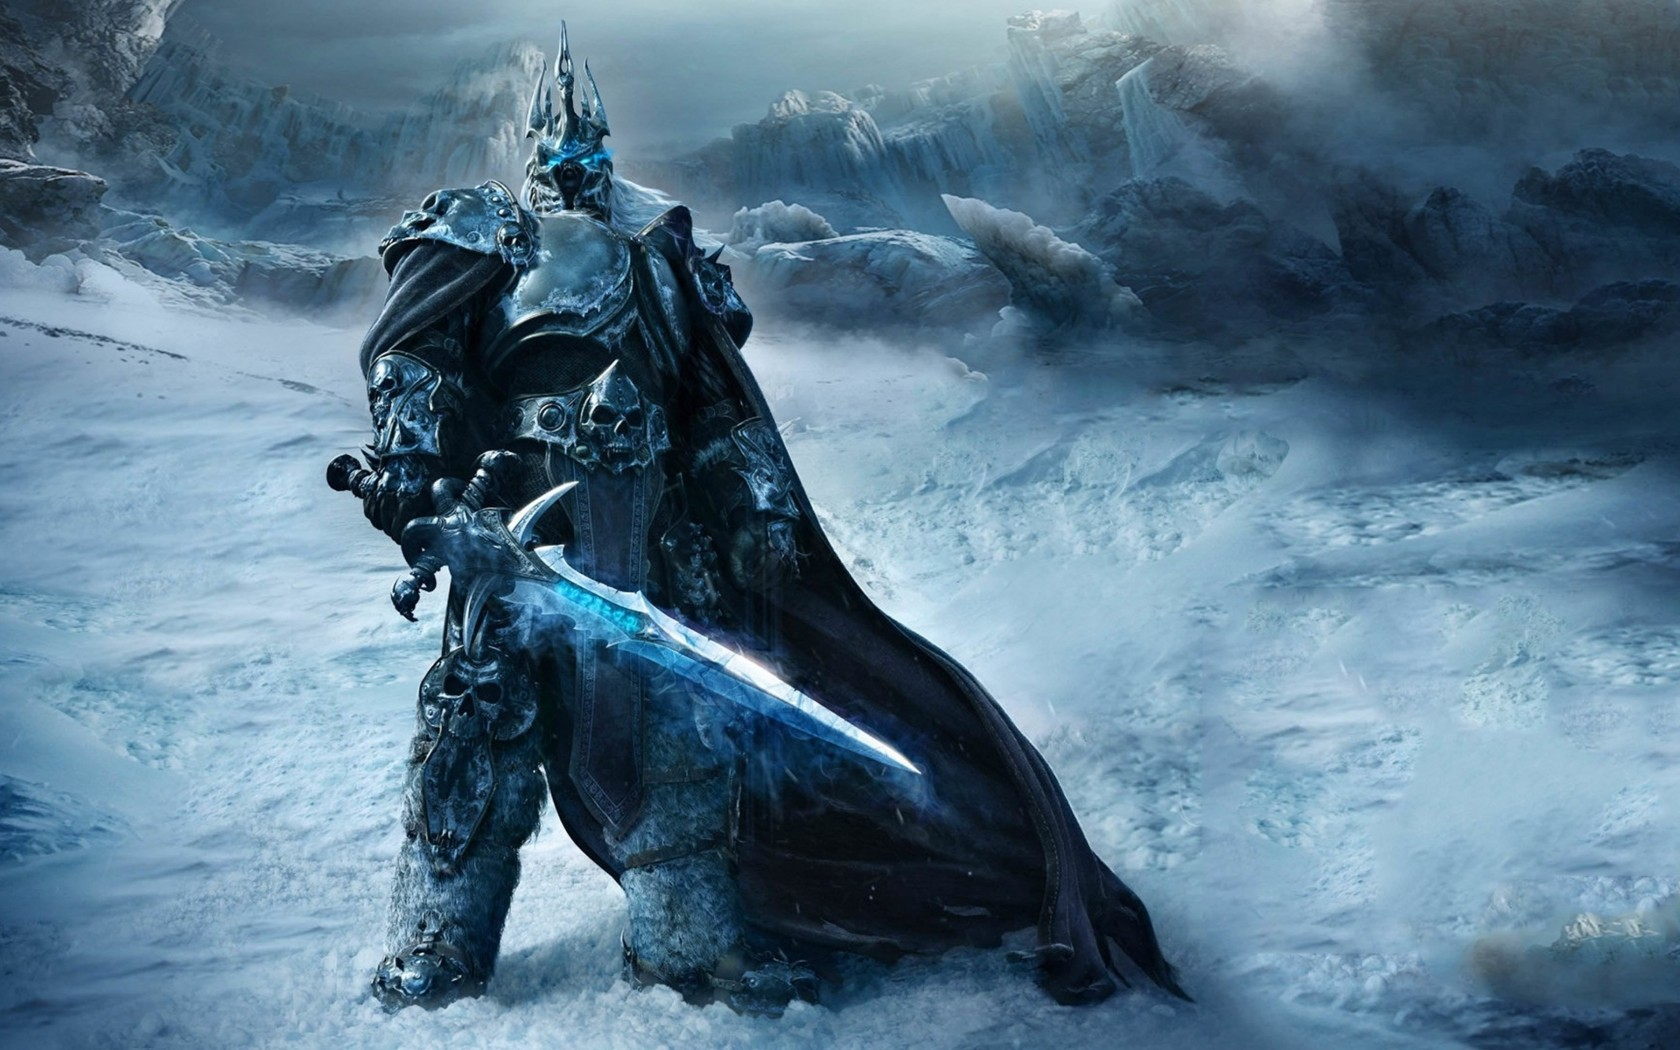 World of Warcraft: Wrath of the Lich King Wallpaper for Desktop 1680x1050